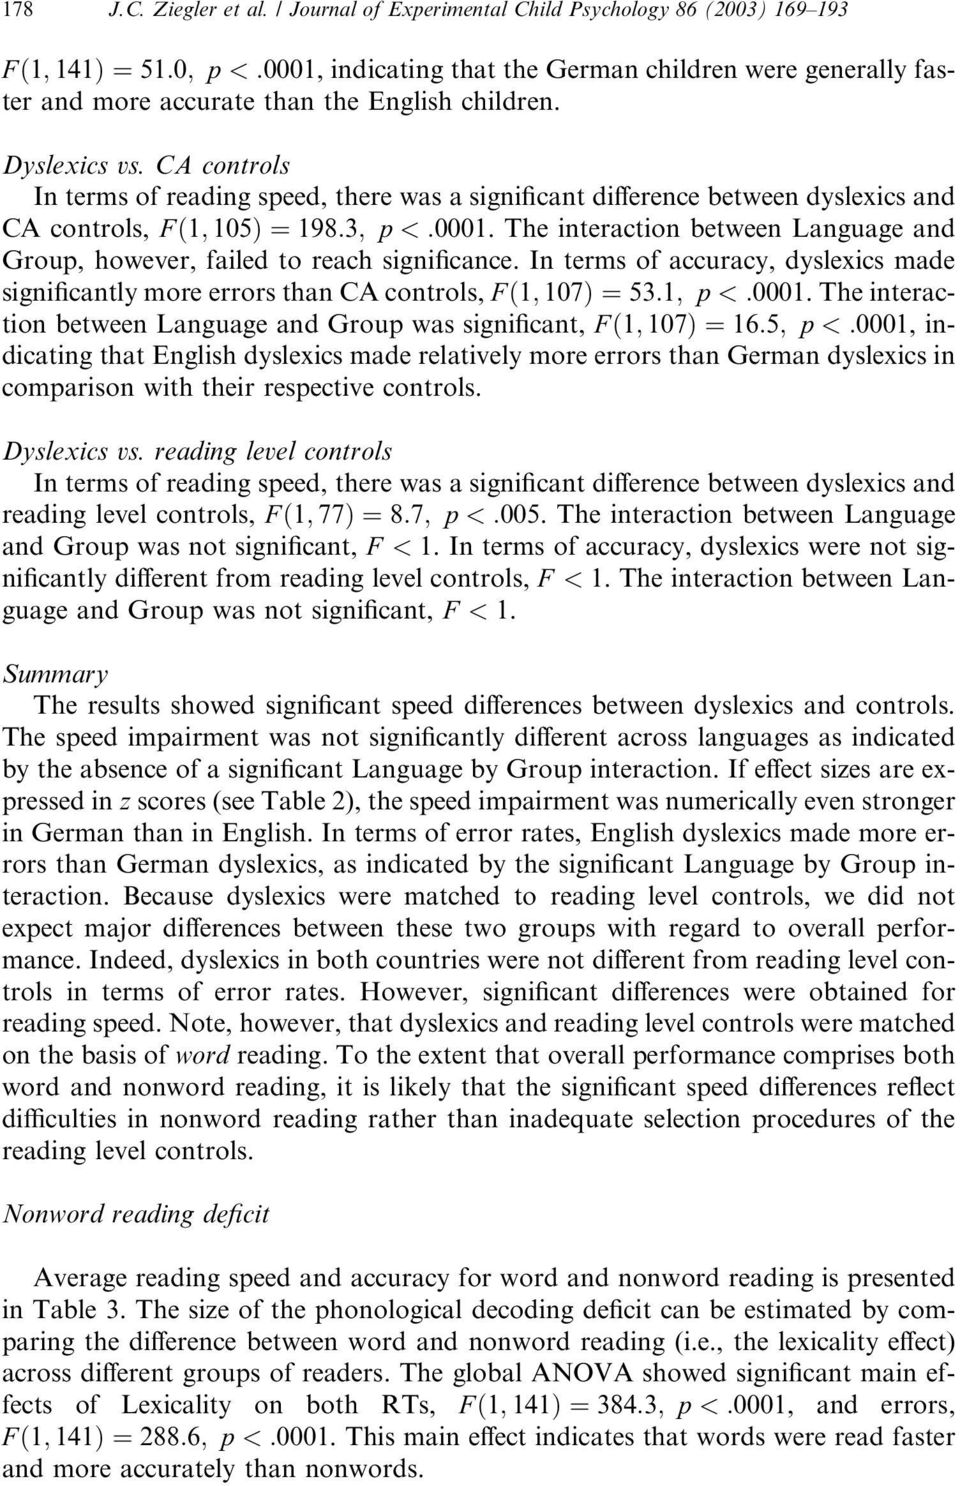 Dyslexics vs. CA controls In terms of reading speed, there was a significant difference between dyslexics and CA controls, F ð1; 105Þ ¼198:3; p <:0001.